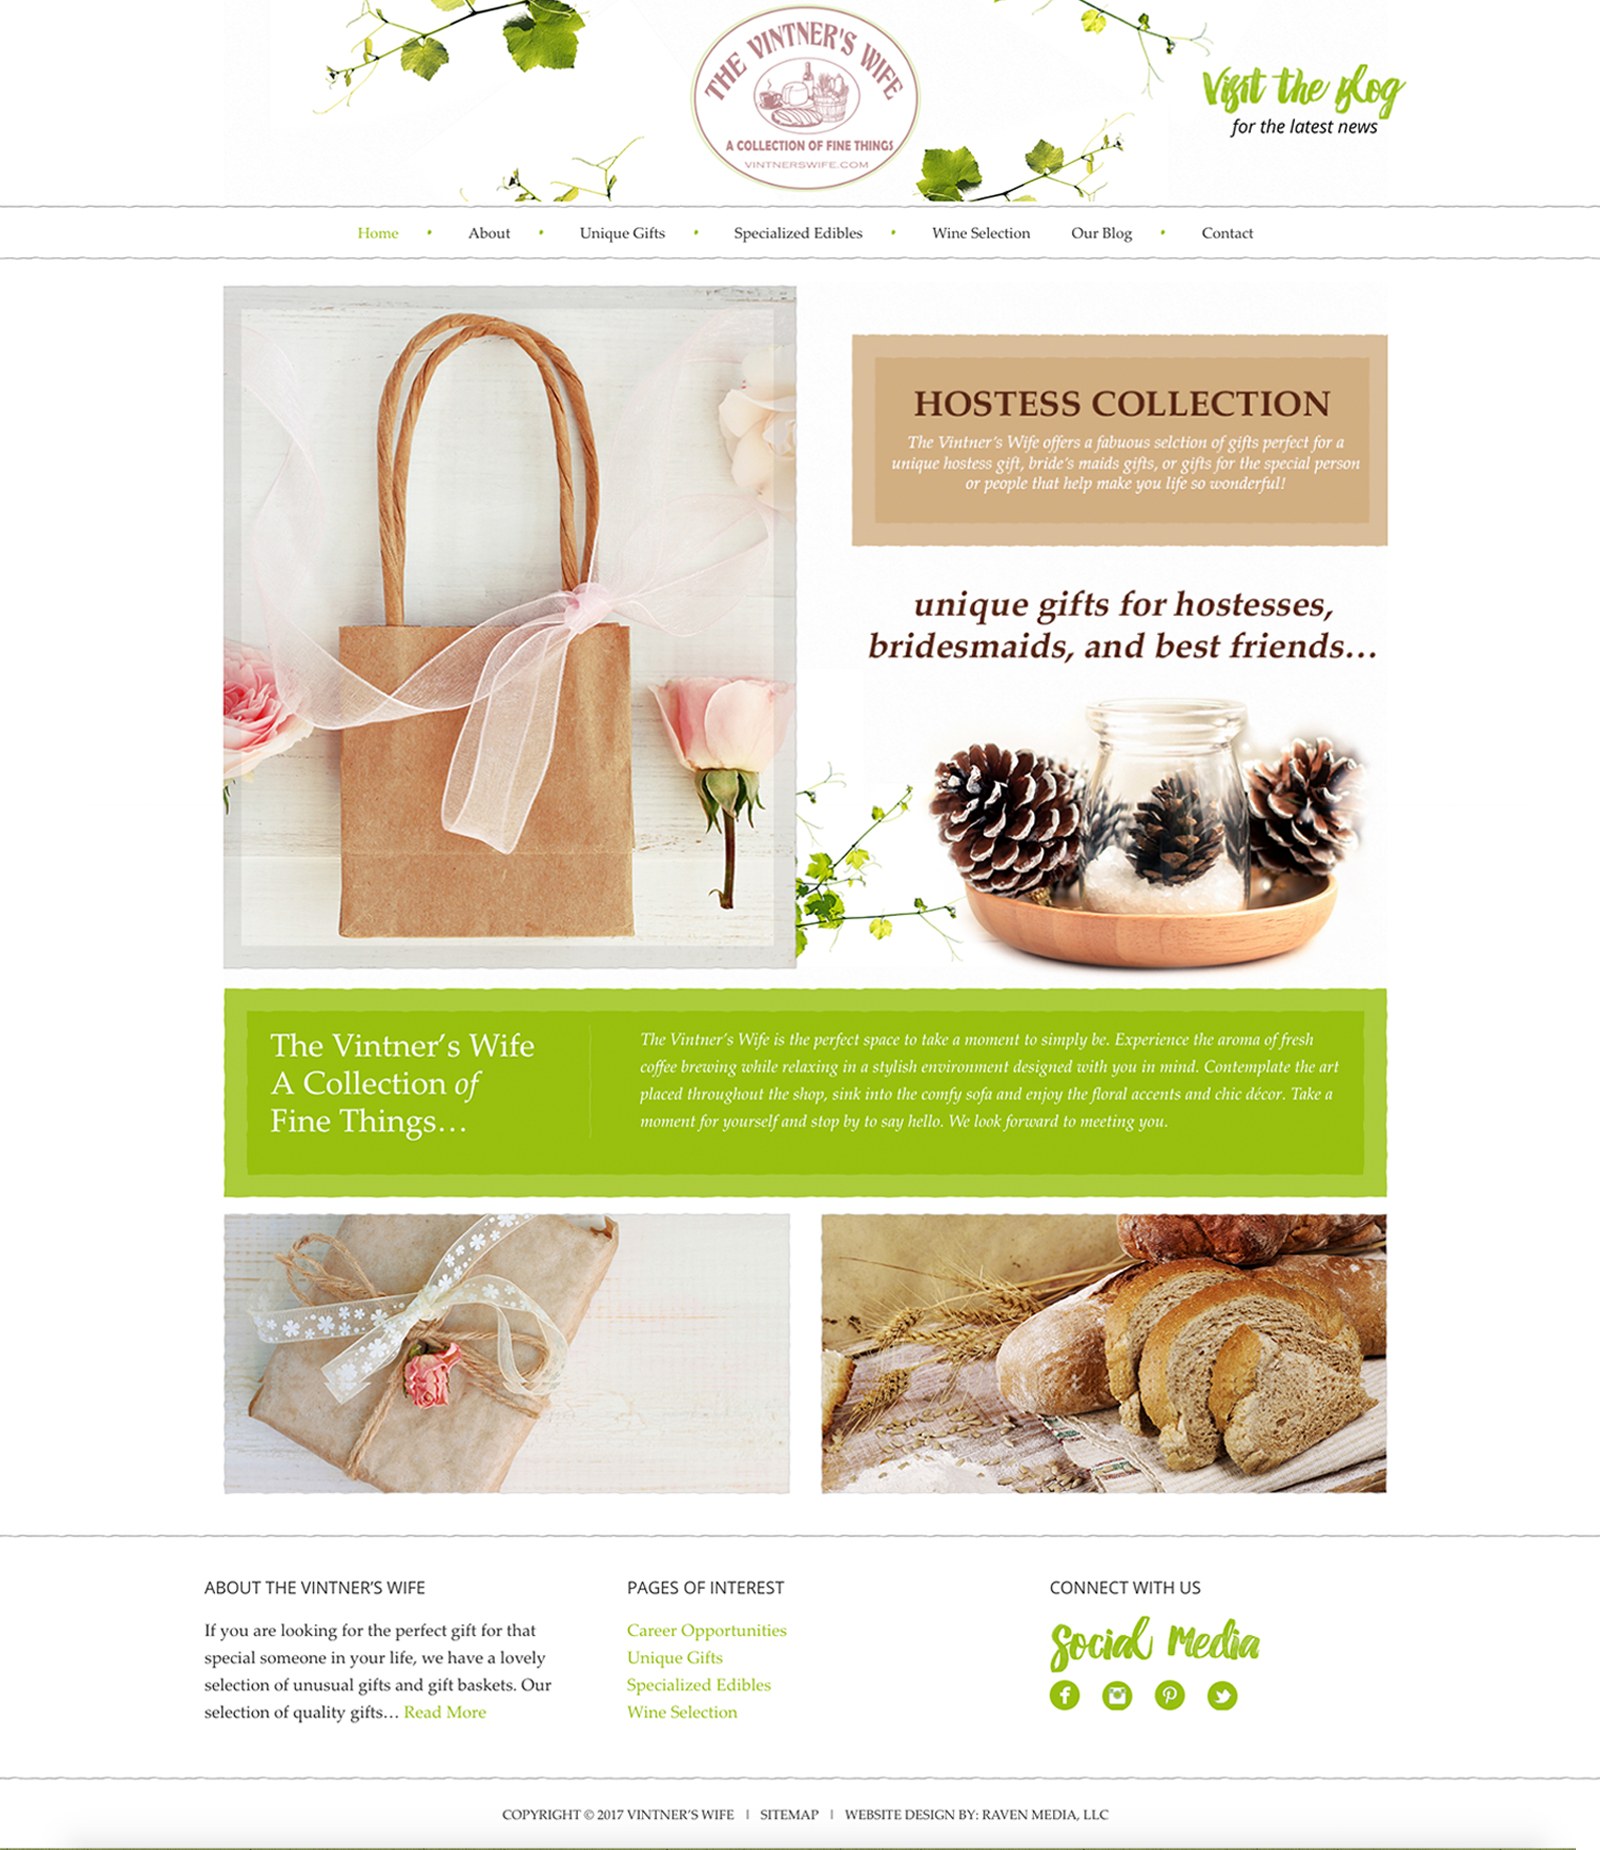 The Vintner's Wife Website Design